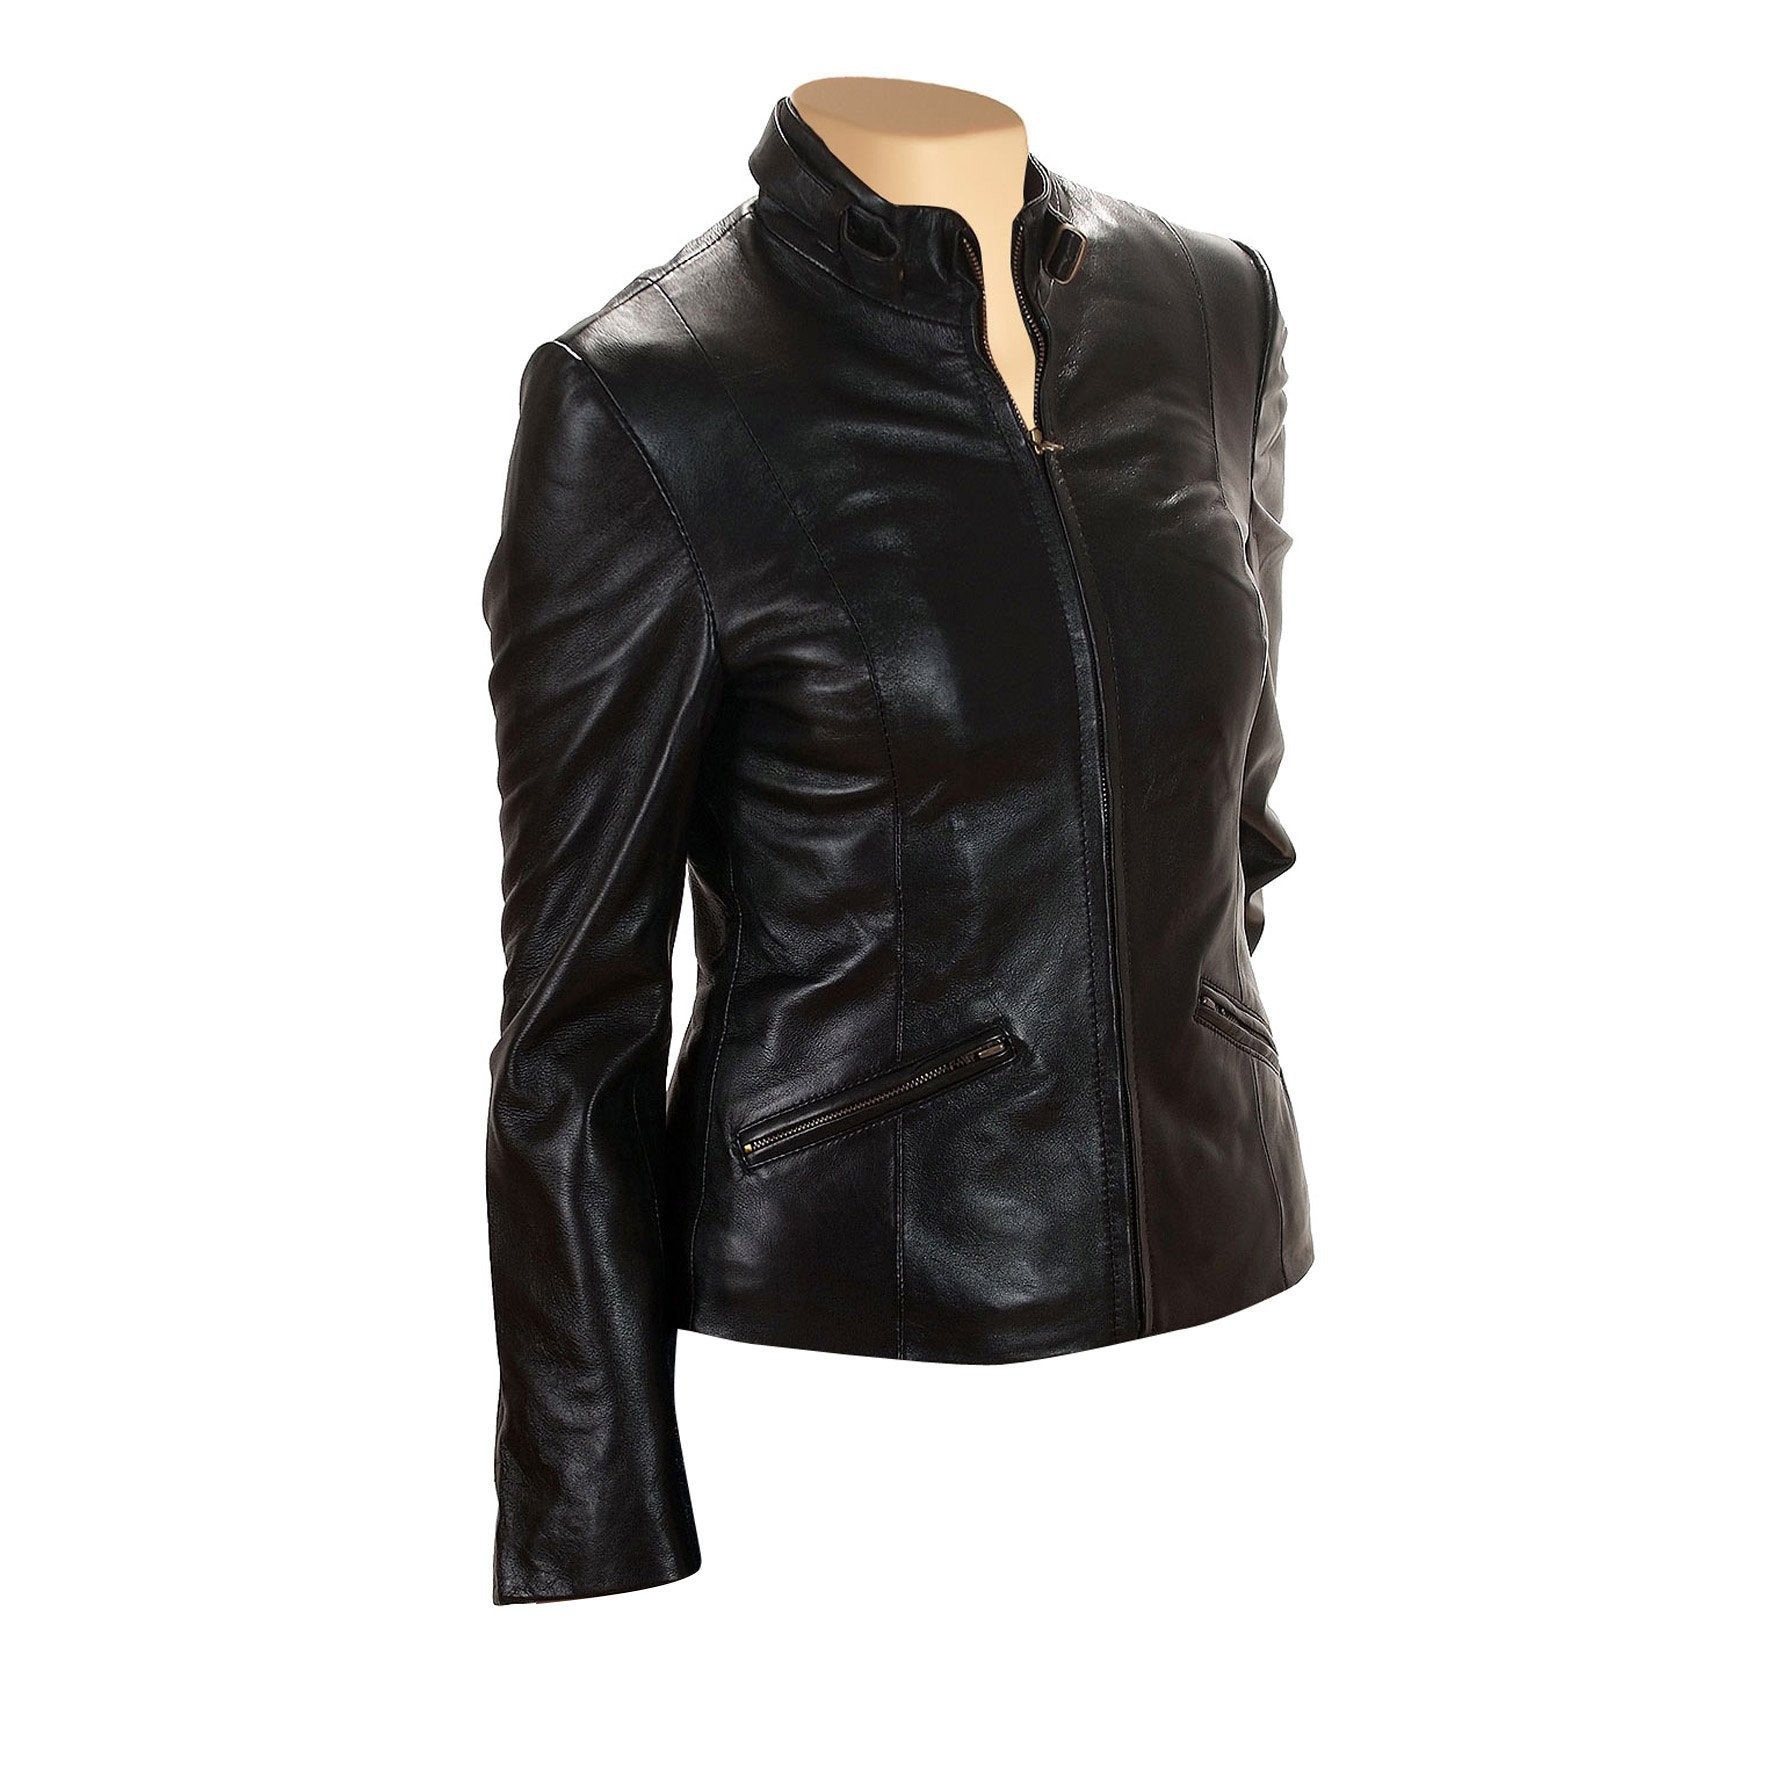 Women's Lidia Black Leather Jacket with Front Zipper